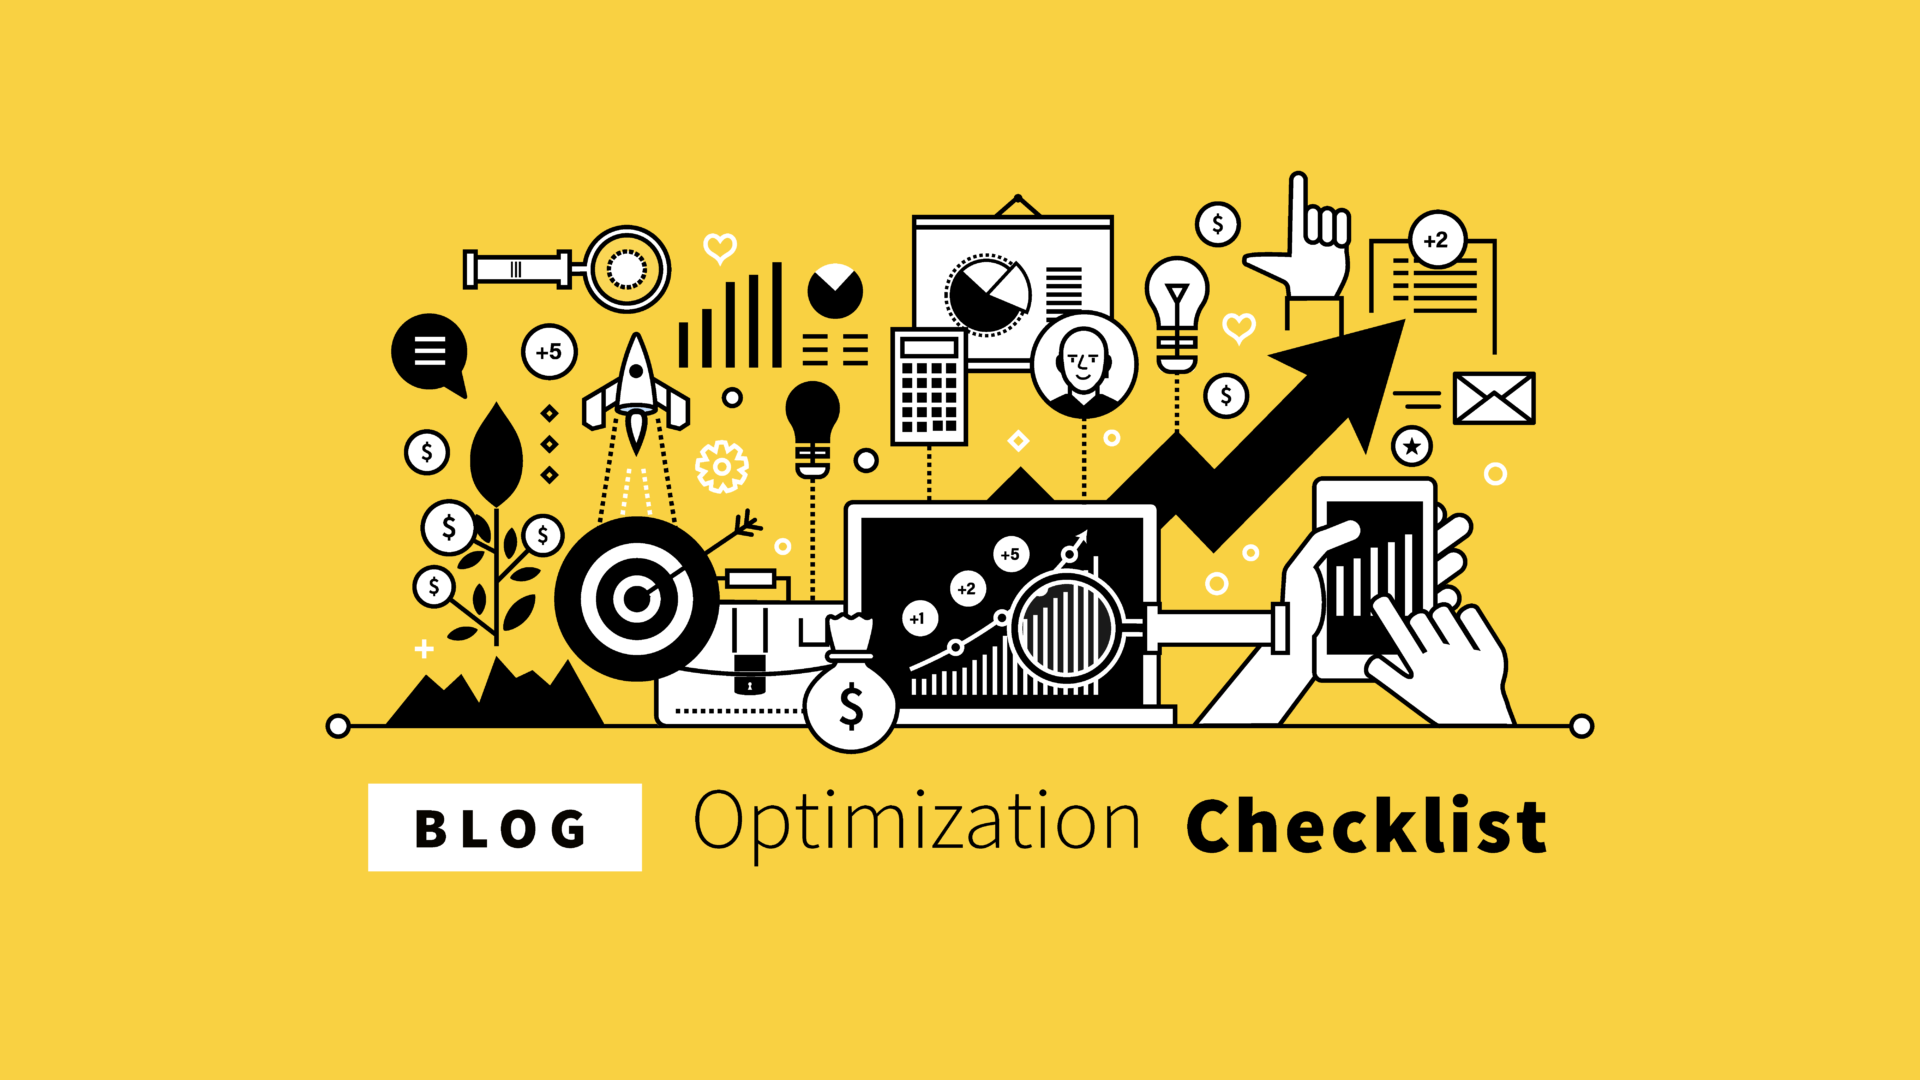 Blog Optimization Checklist